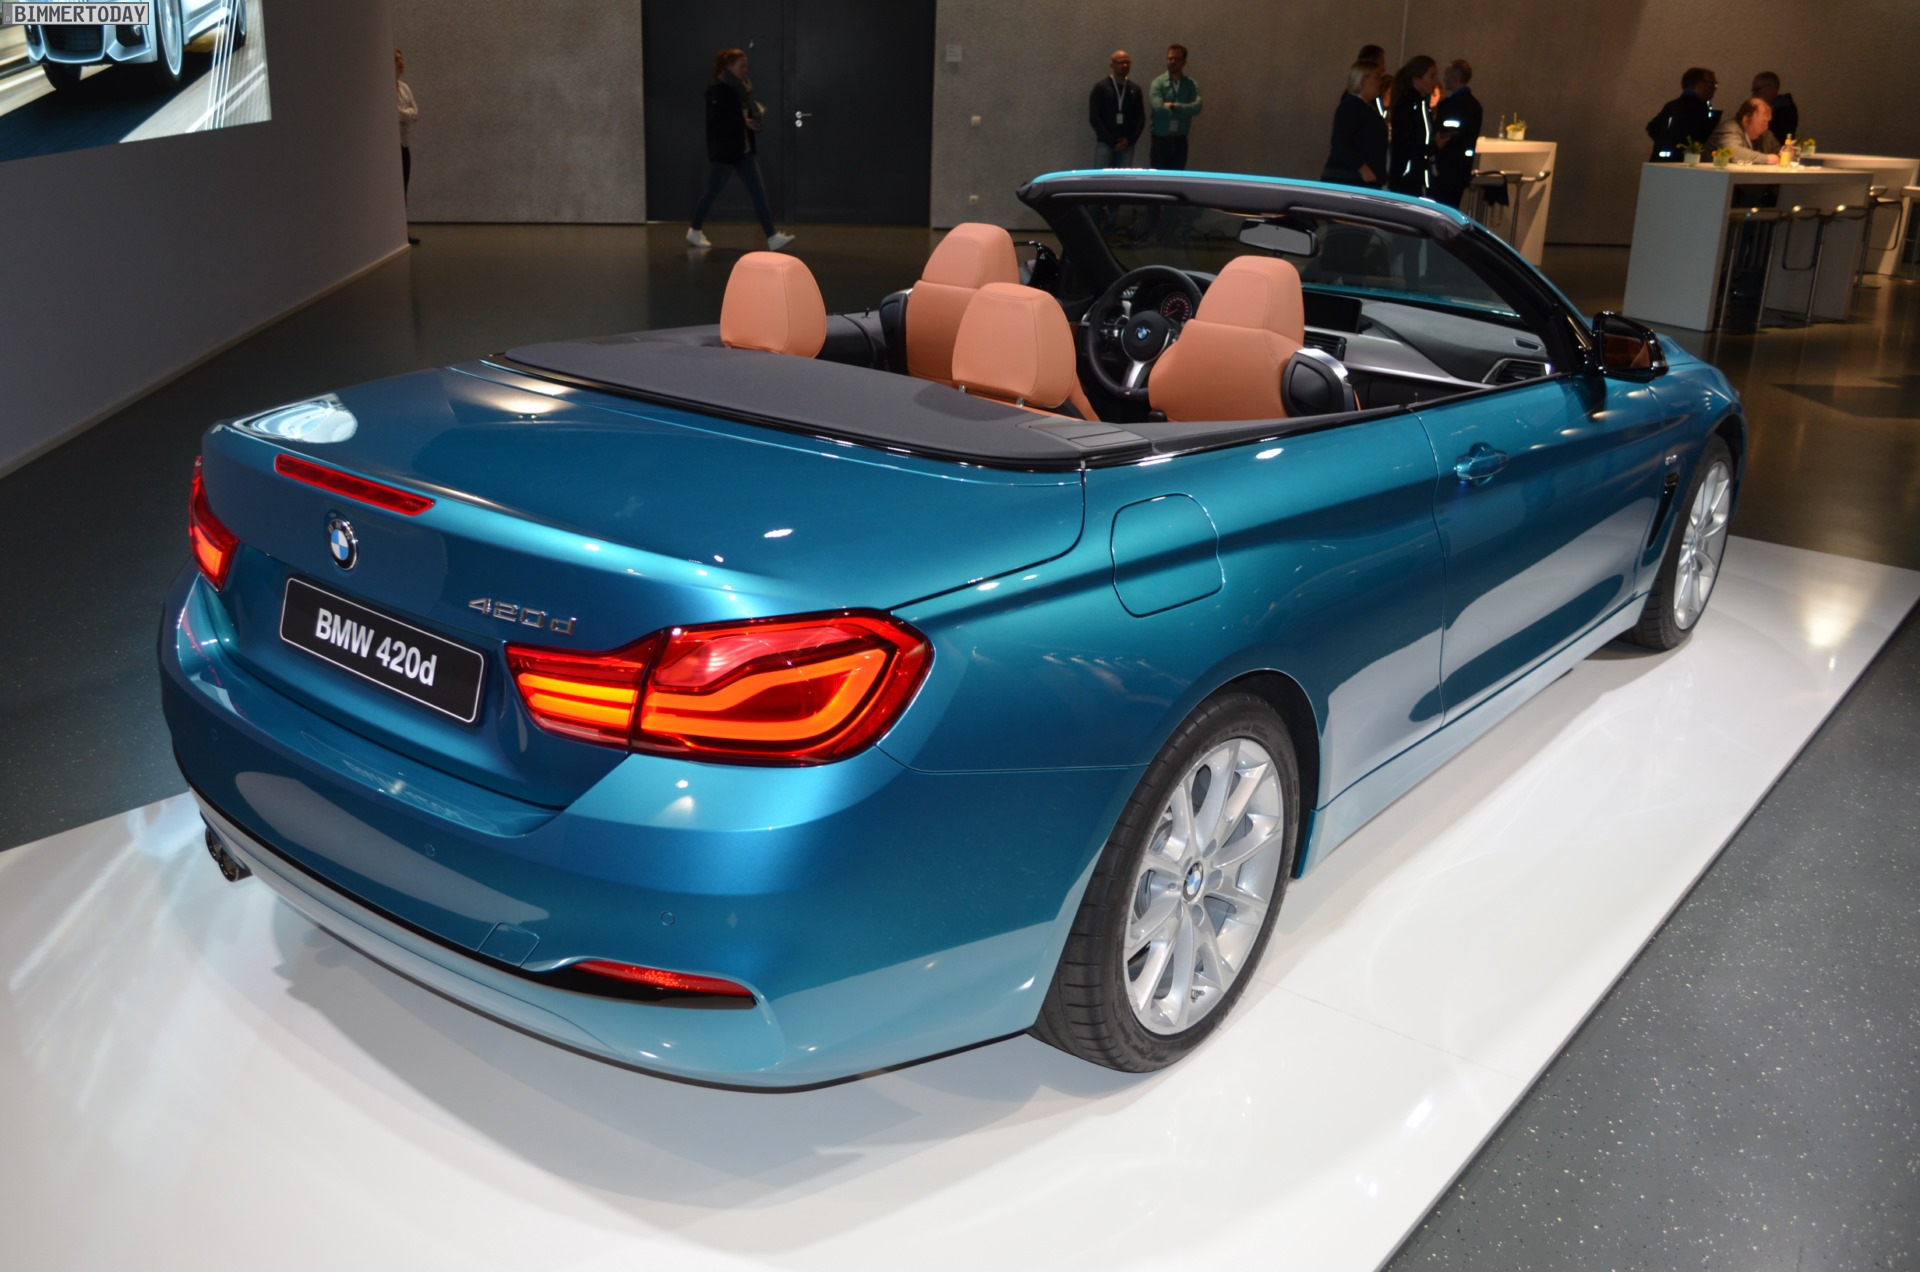 bmw 4er cabrio 2017 420d facelift in snapper rocks blue. Black Bedroom Furniture Sets. Home Design Ideas